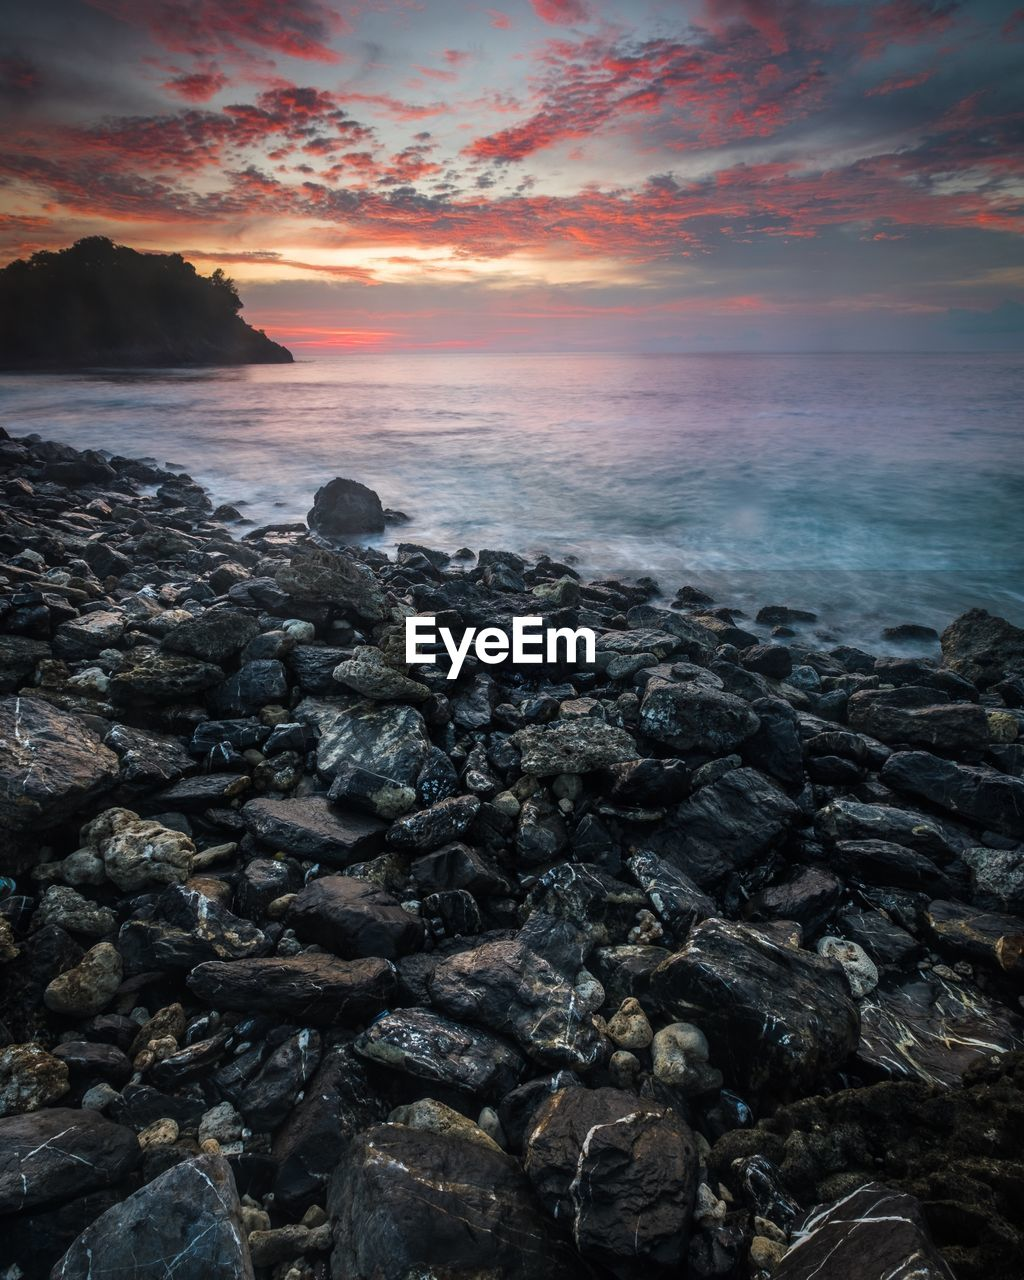 sea, sunset, nature, beauty in nature, beach, horizon over water, water, tranquility, tranquil scene, shore, scenics, sky, rock - object, outdoors, no people, pebble beach, wave, day